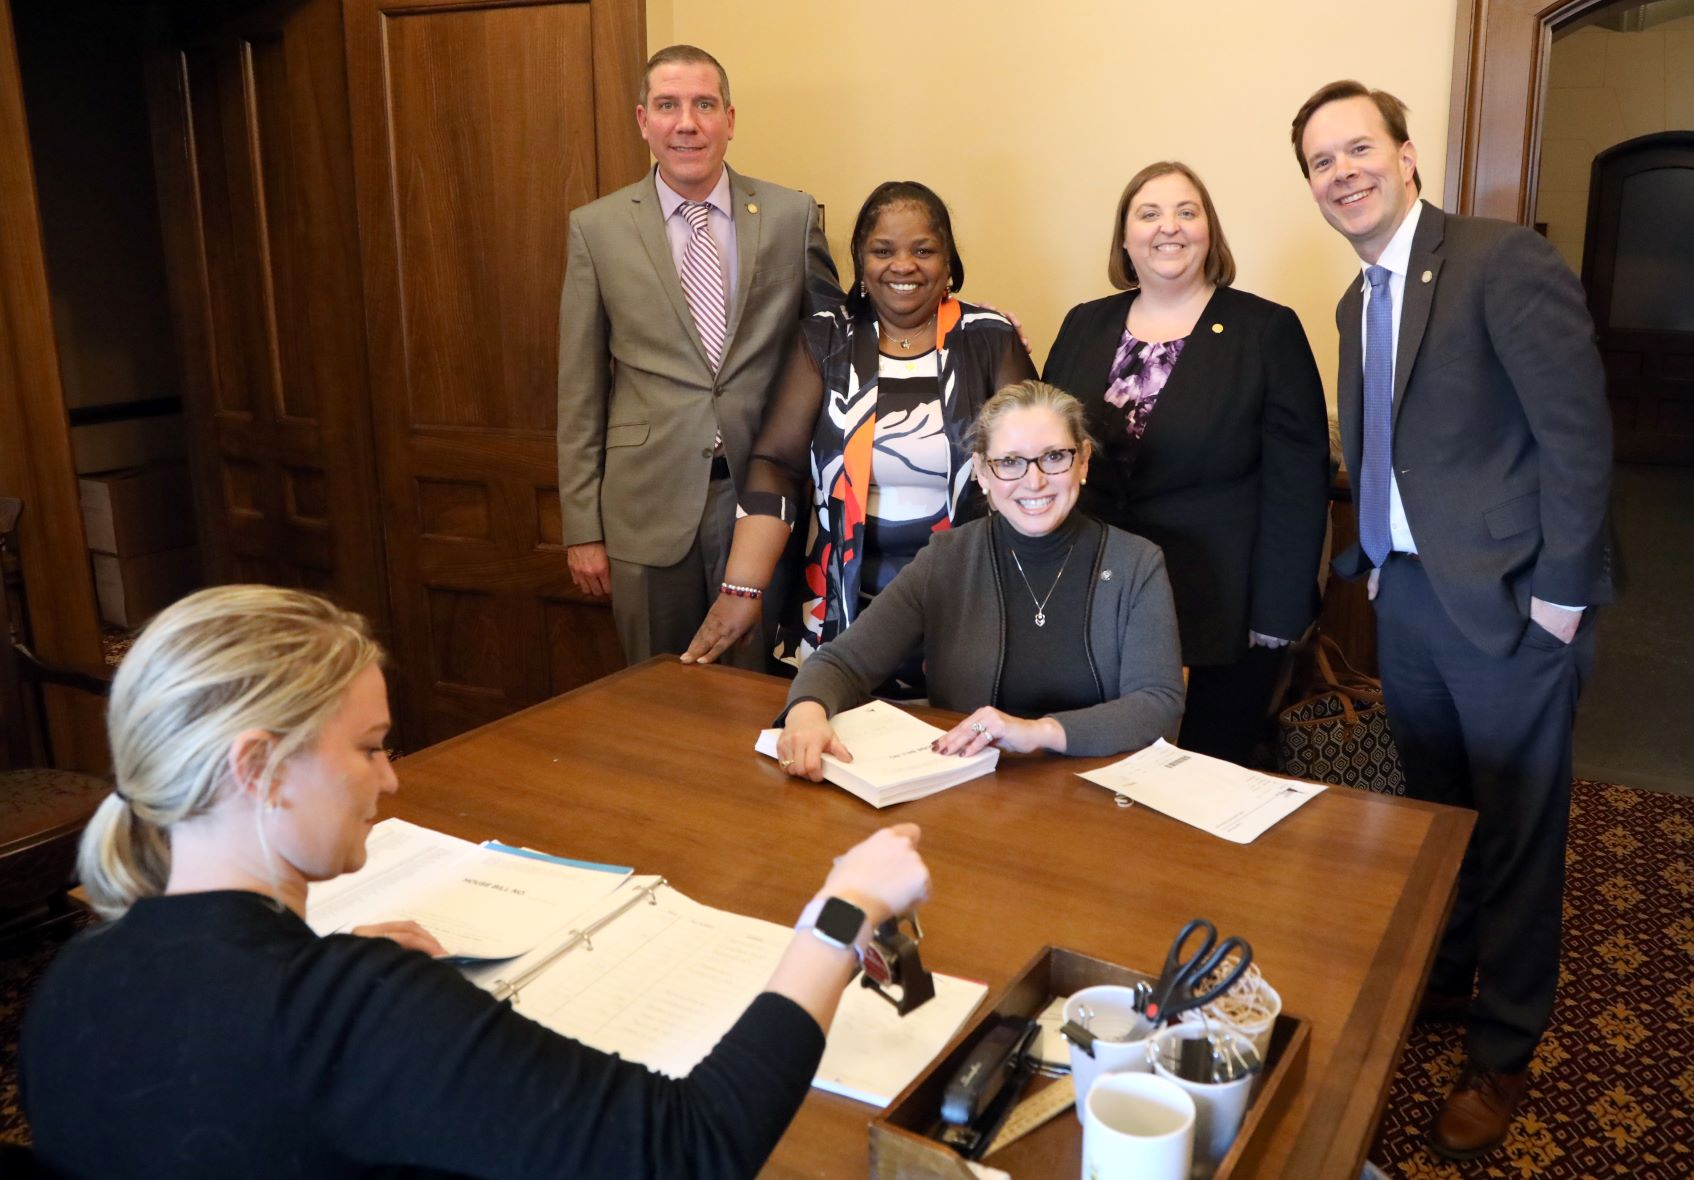 State Rep. Sheryl Kennedy (D-Davison) and members of the Educator's Caucus state Reps. Nate Shannon (D-Sterling Heights), Brenda Carter (D-Pontiac), Lori Stone (D-Warren), Matt Koleszar (D-Plymouth) introducing HB 5497 at the Capitol in Lansing on Feb. 19, 2020